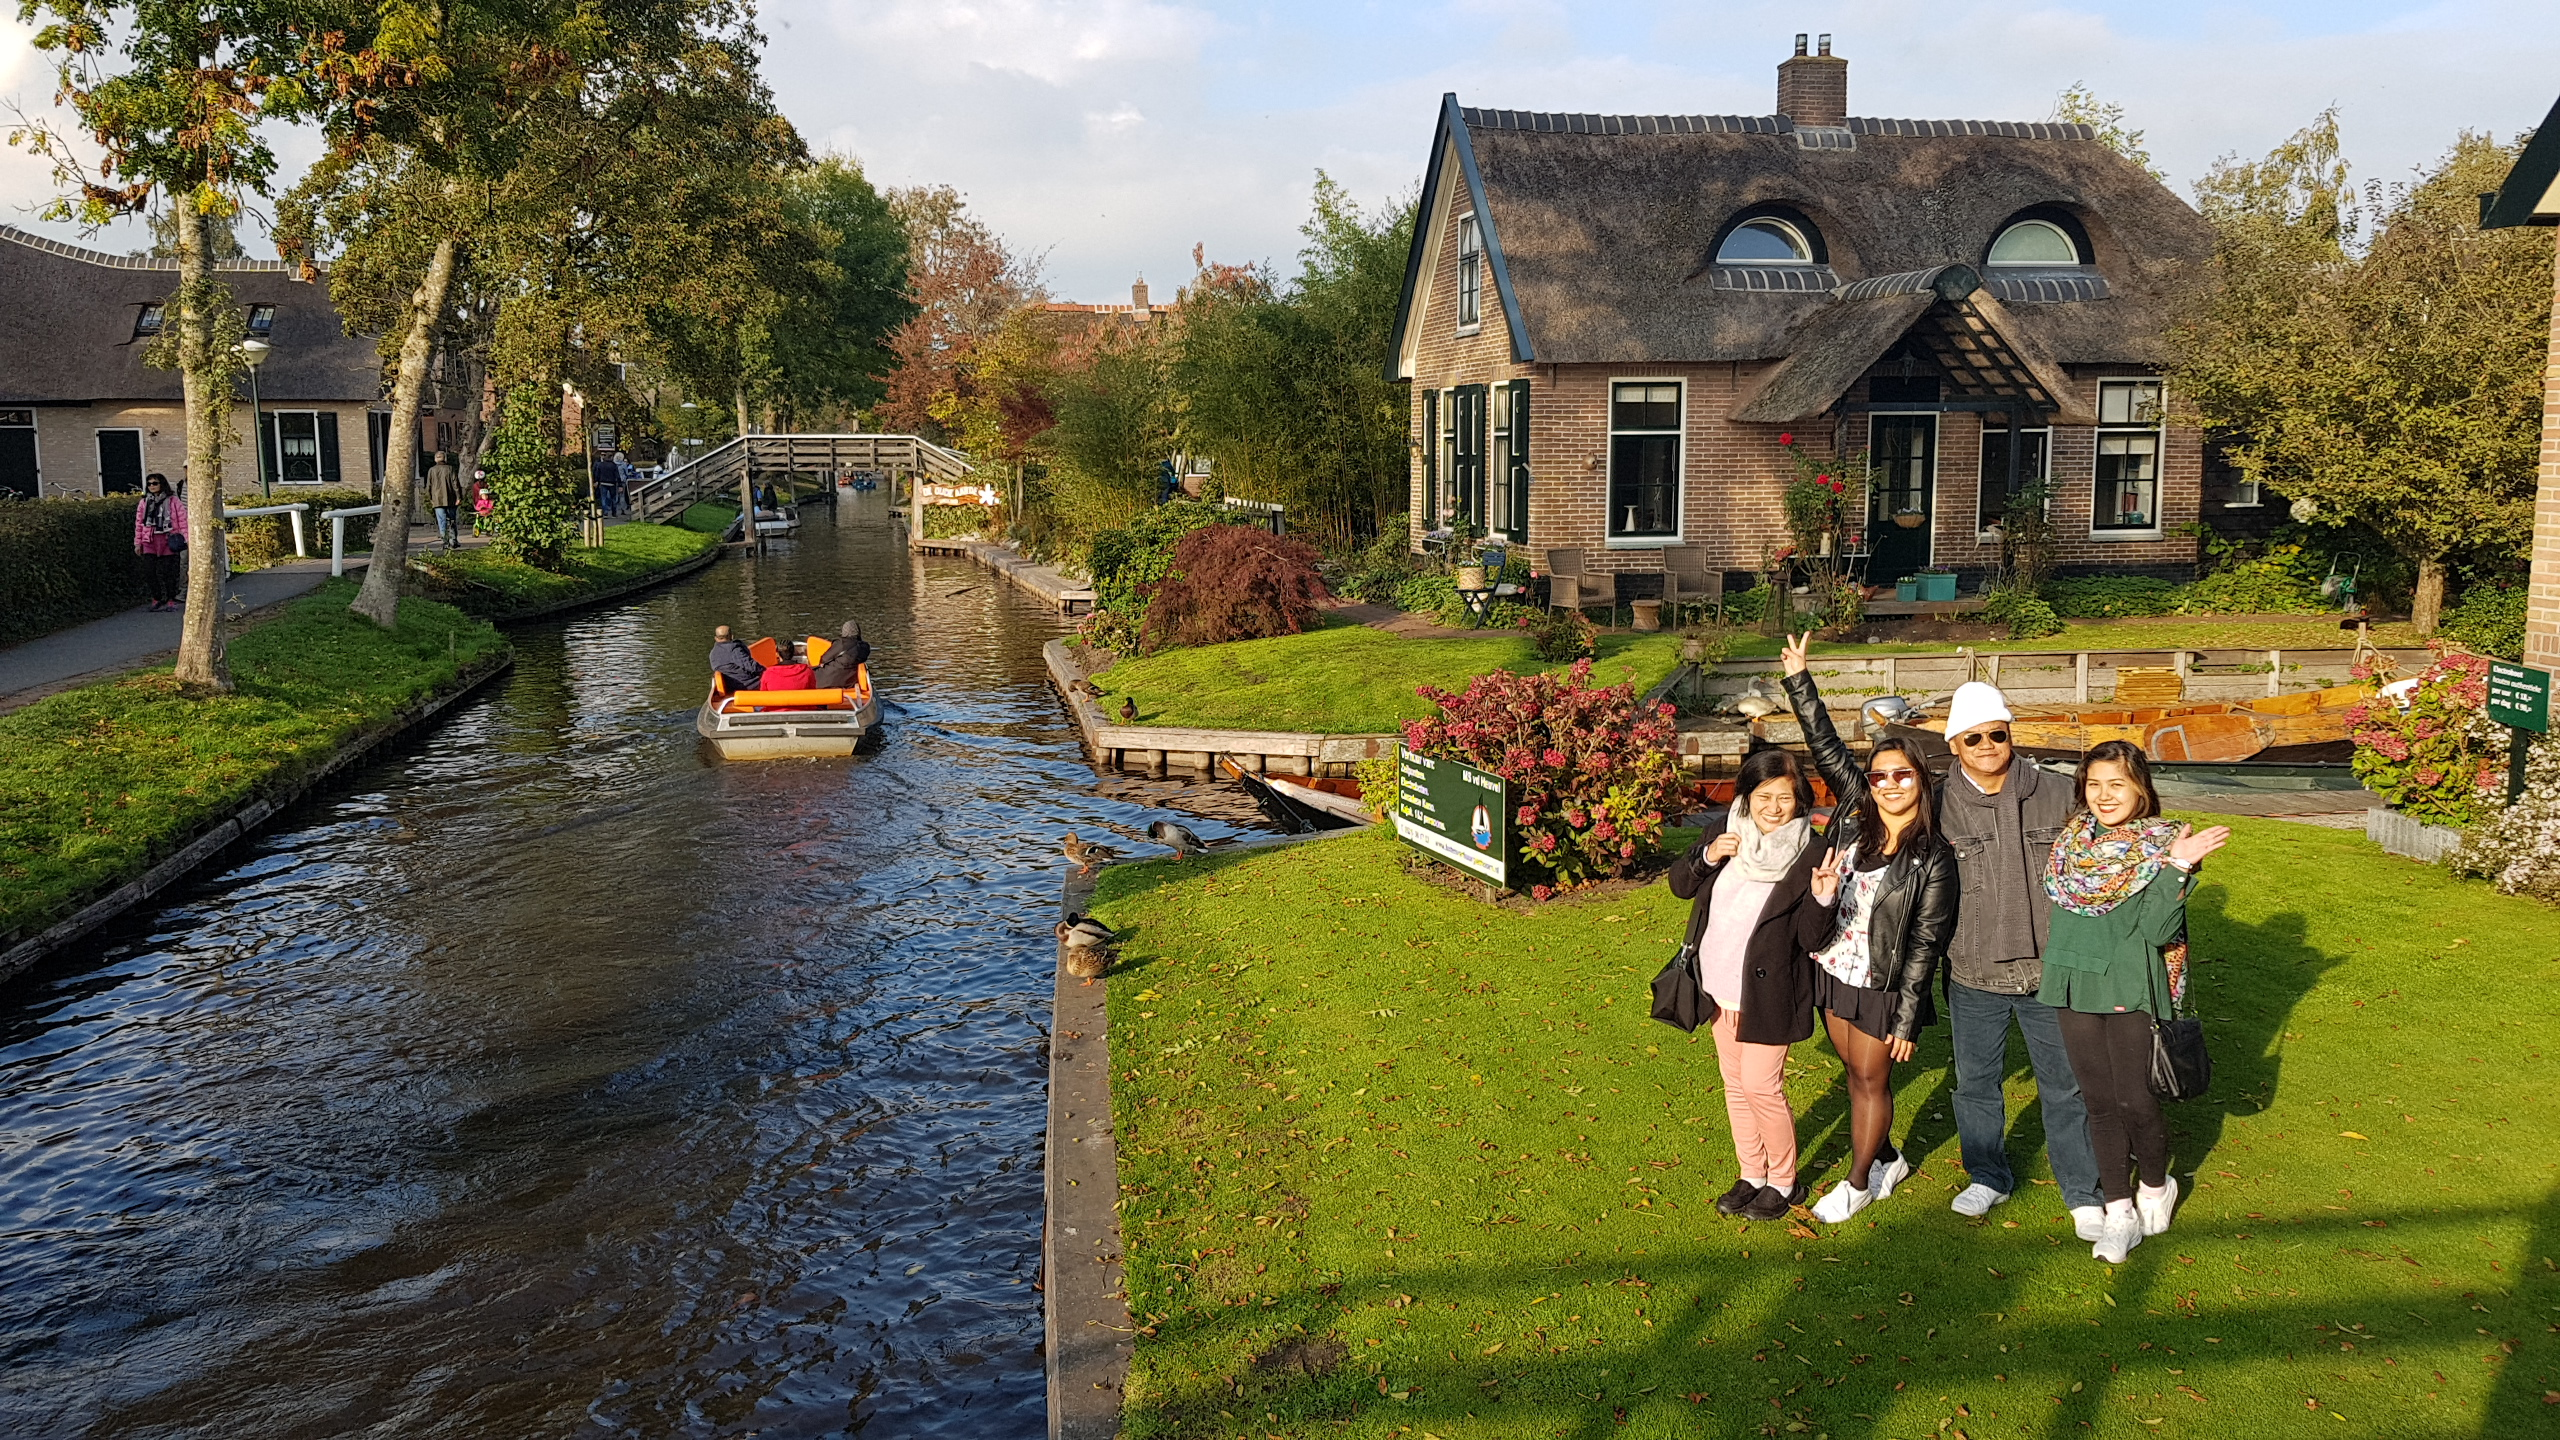 20181020_220701Giethoorn is a mostly car-free village in the northeastern Dutch province of Overijssel. It's known for its boat-filled waterways, footpaths, bicycle trails and centuries-old thatched-roof houses.